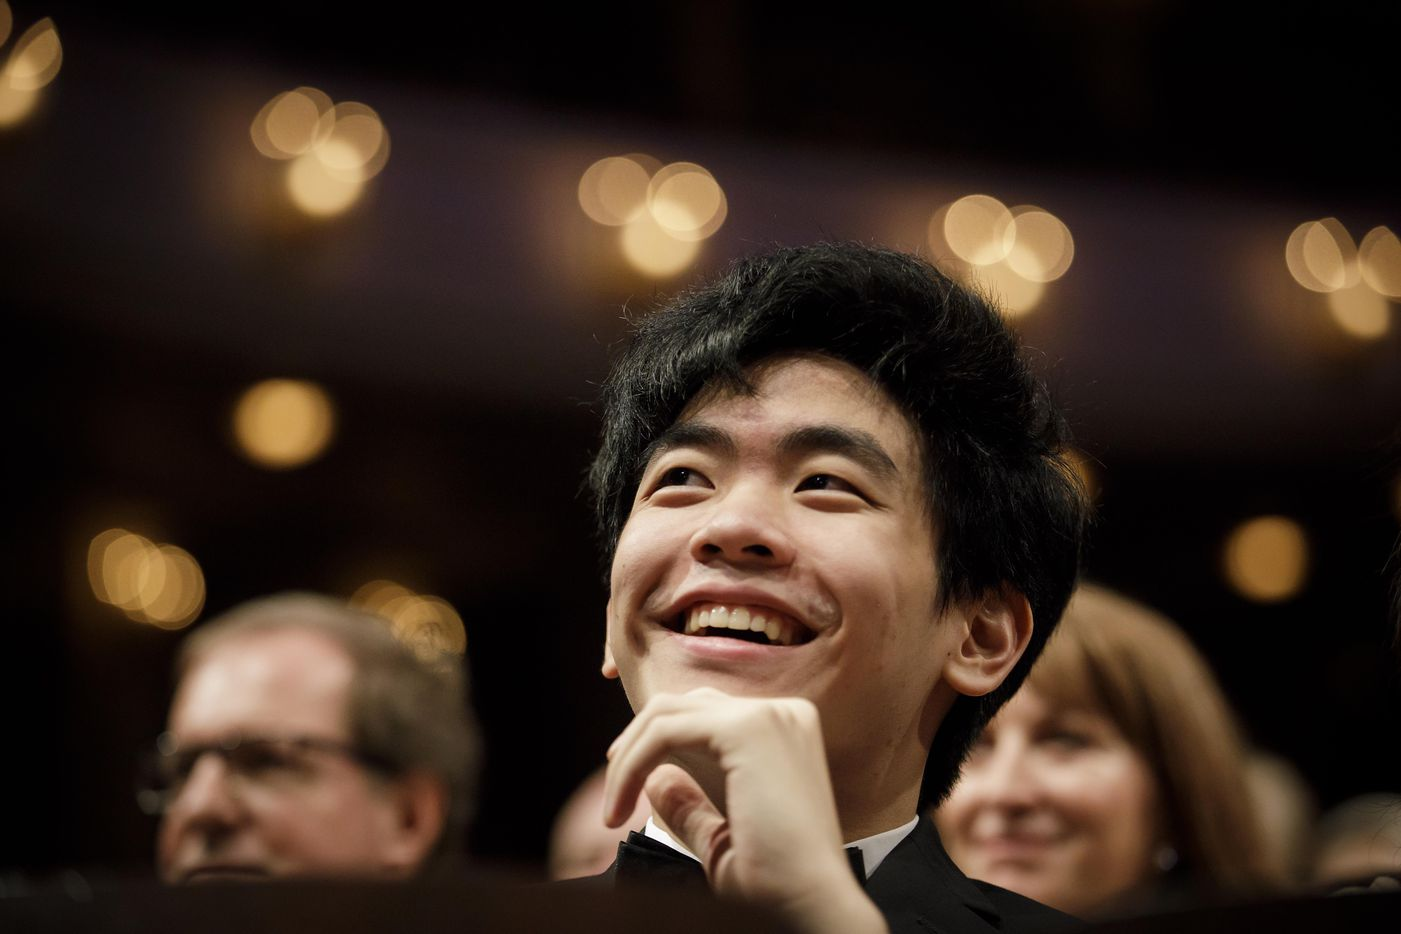 Bronze medalist Daniel Hsu of the USA smiles before the announcement of the winners during the Van Cliburn International Piano Competition awards ceremony at the Bass Performance Hall in Fort Worth on Saturday, June 10, 2017. (Smiley N. Pool/The Dallas Morning News)